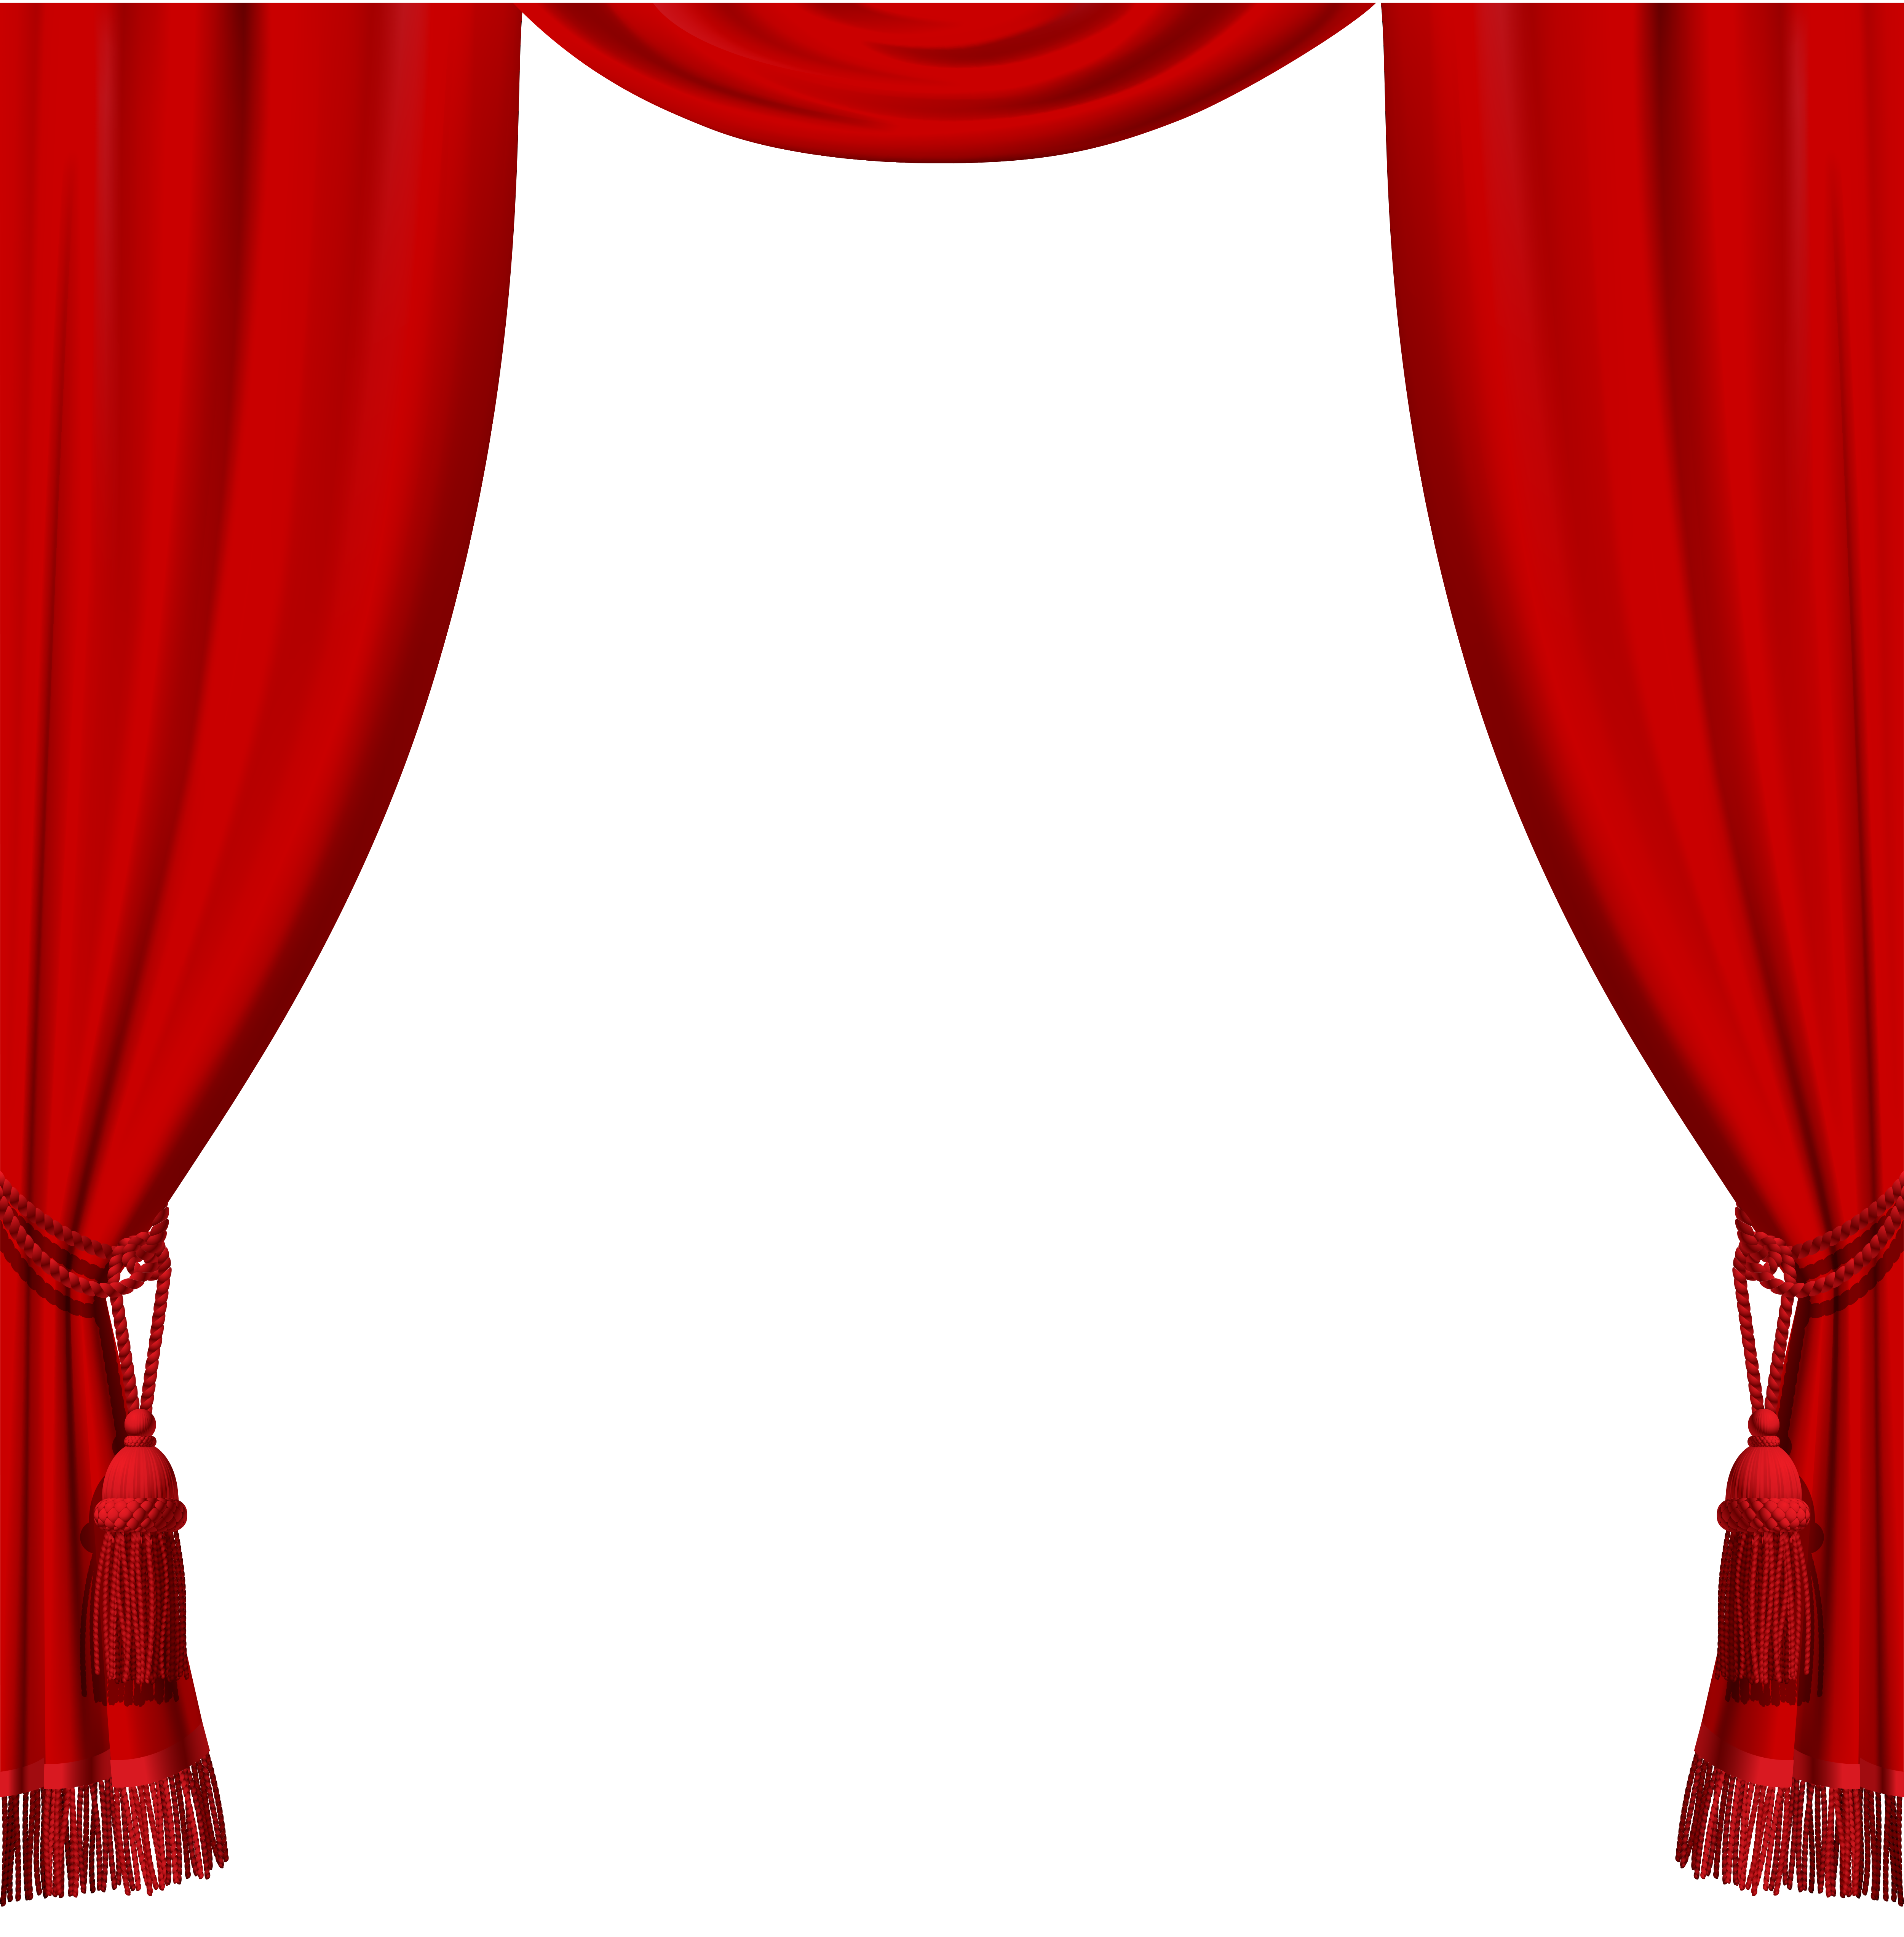 Red And White, Curtains Png Images